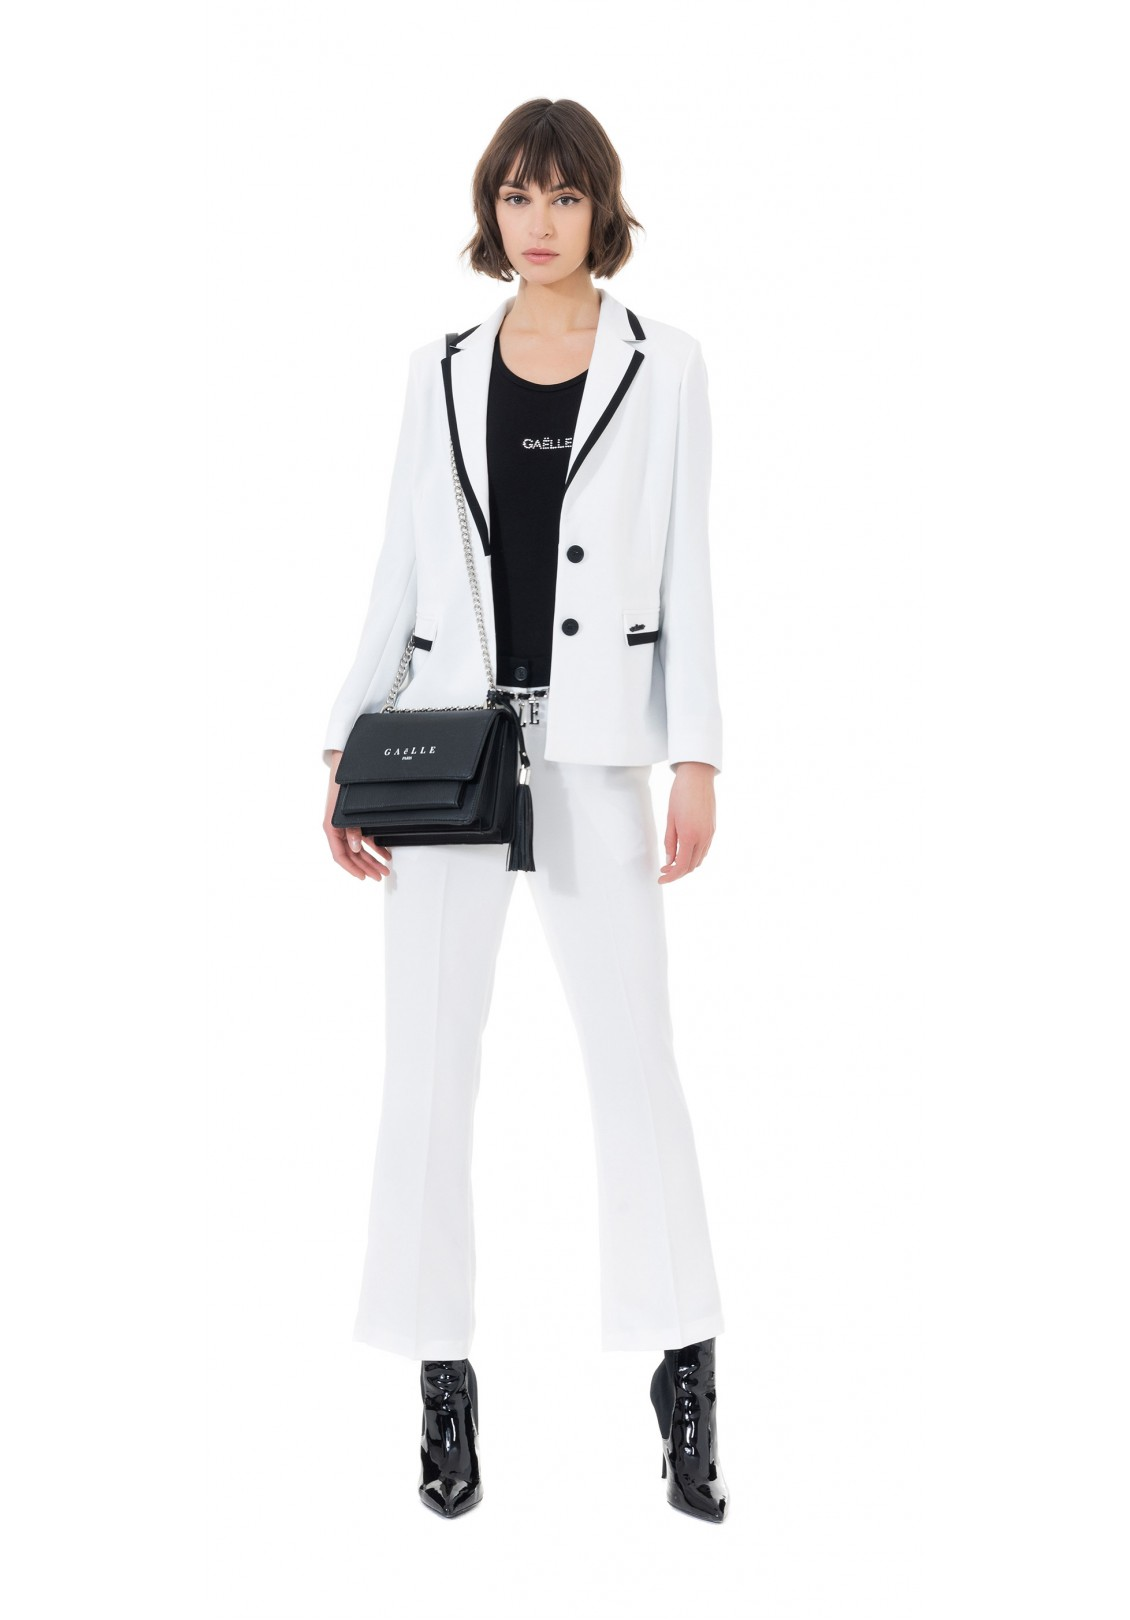 JACKET - GBD4840 - GAELLE PARIS